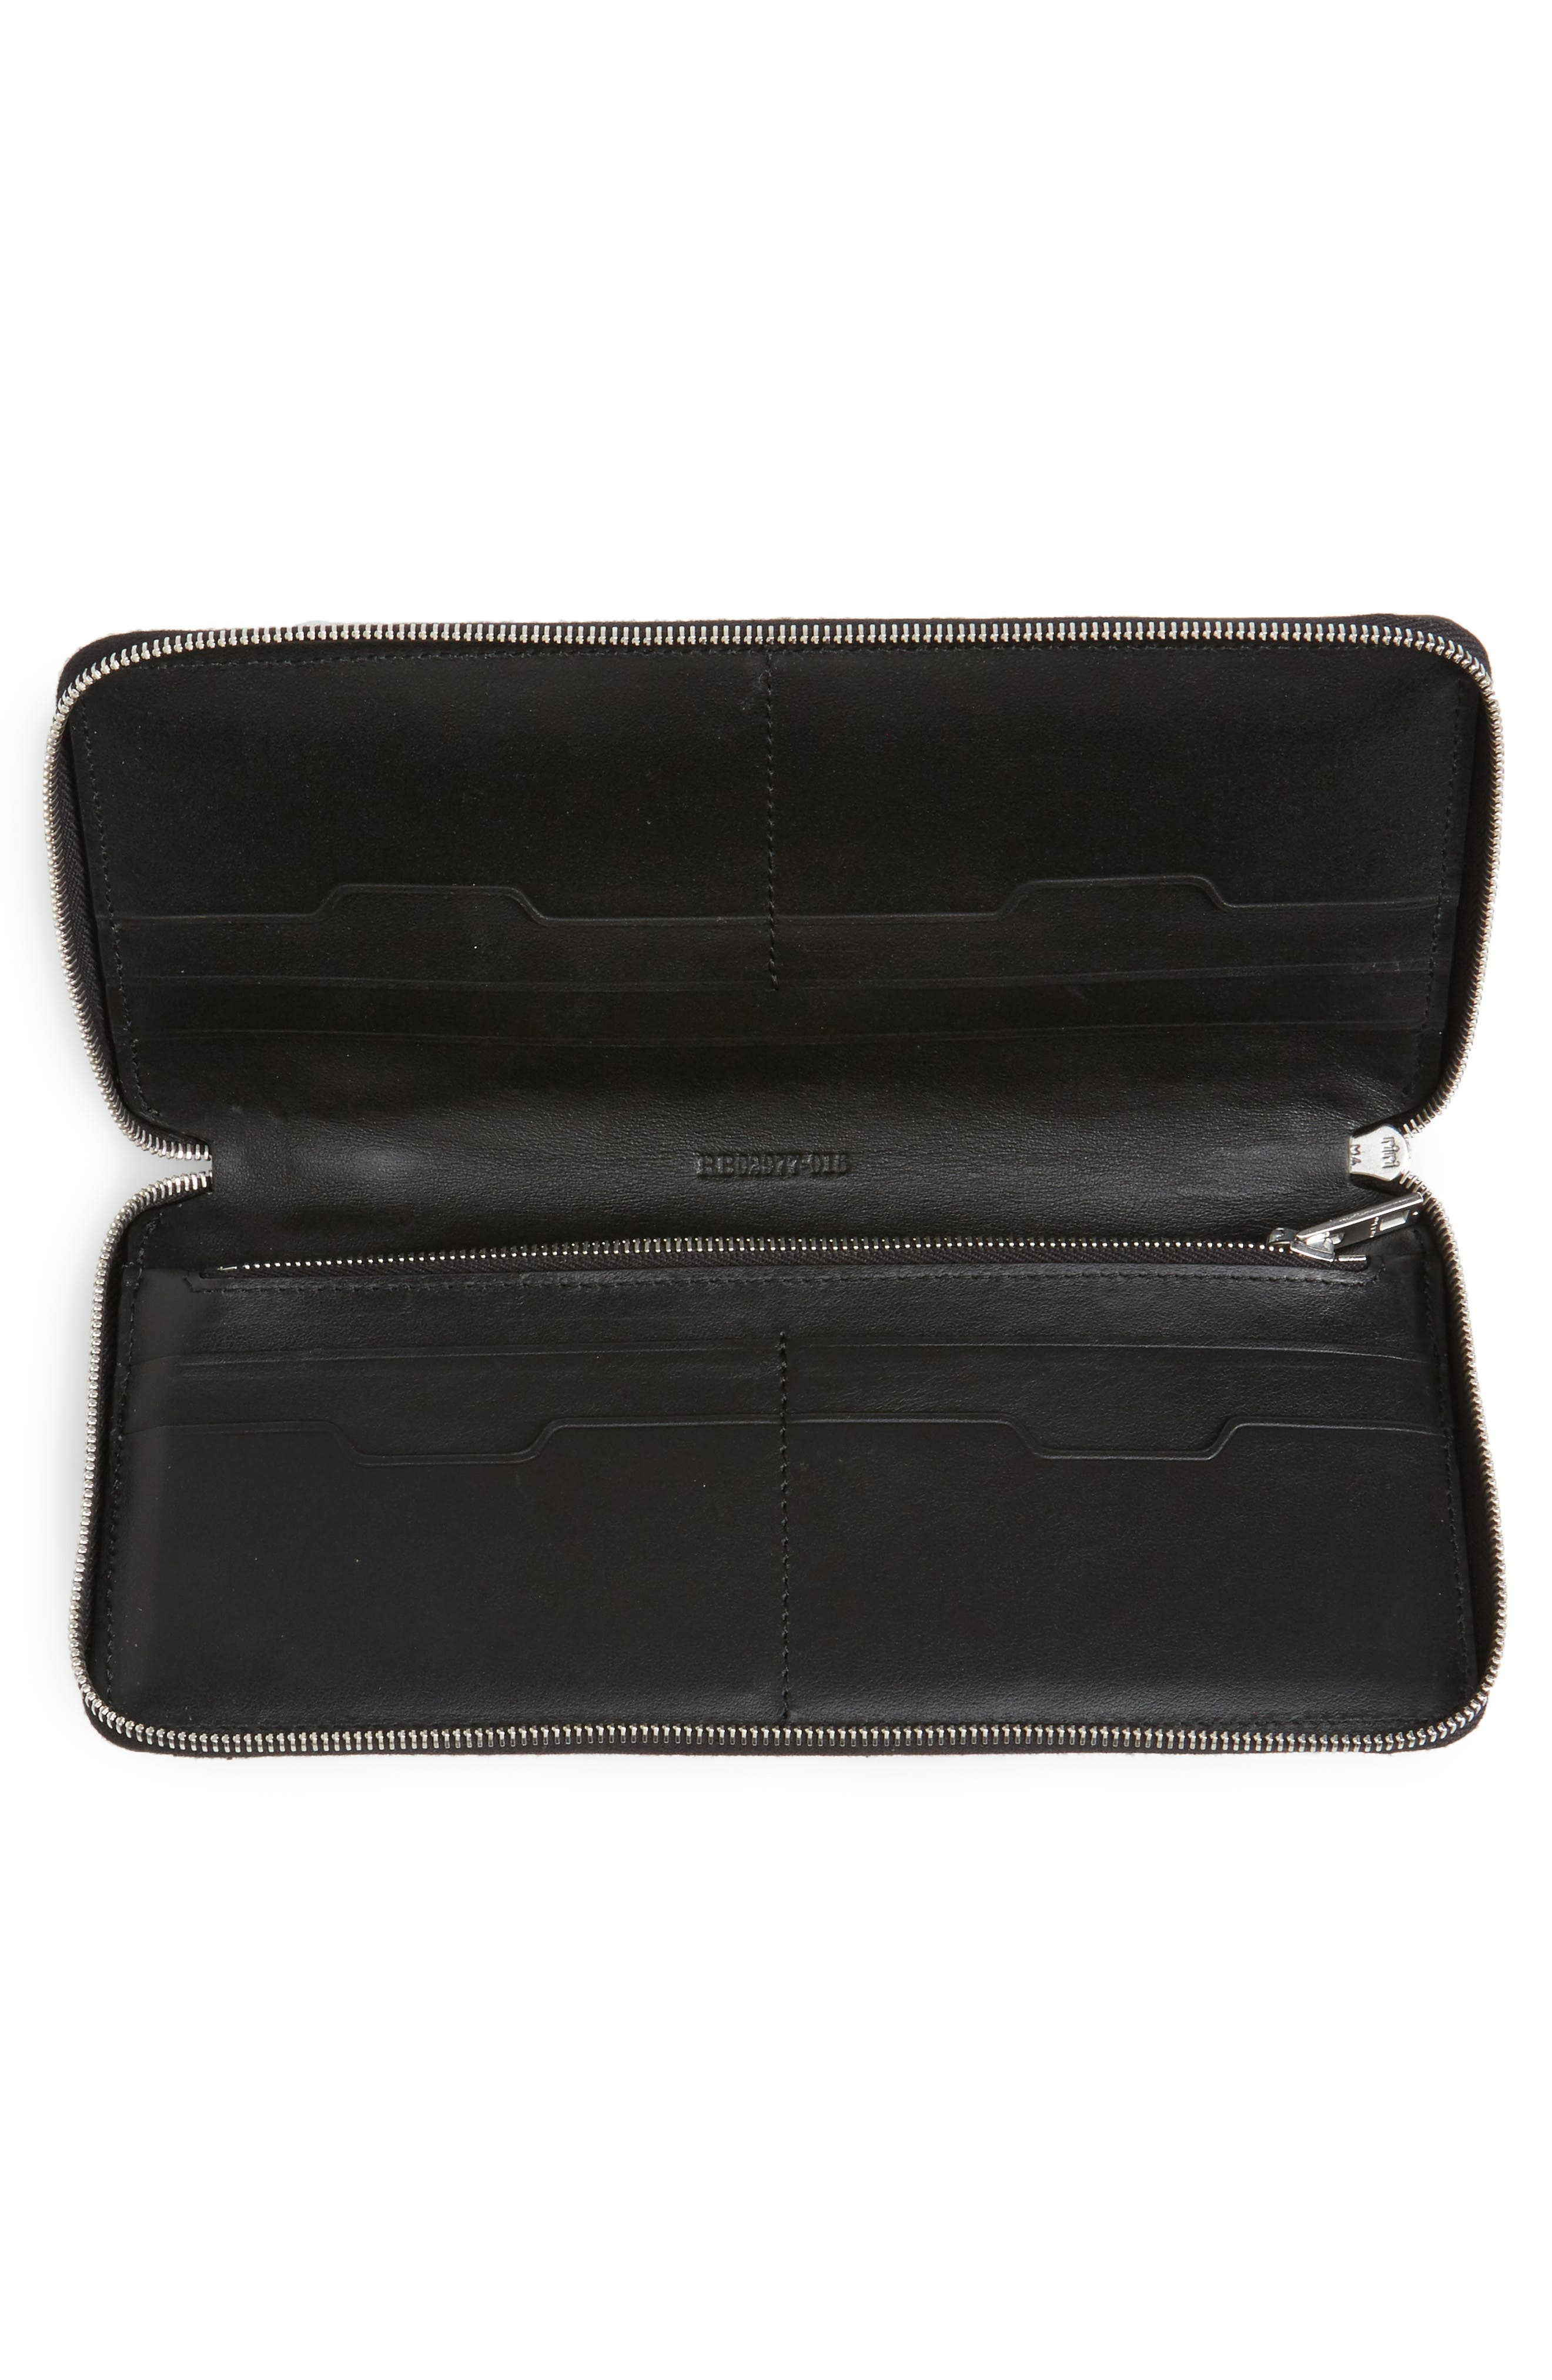 Studded Calfskin Leather Zip-Around Wallet,                             Alternate thumbnail 2, color,                             Black Studs